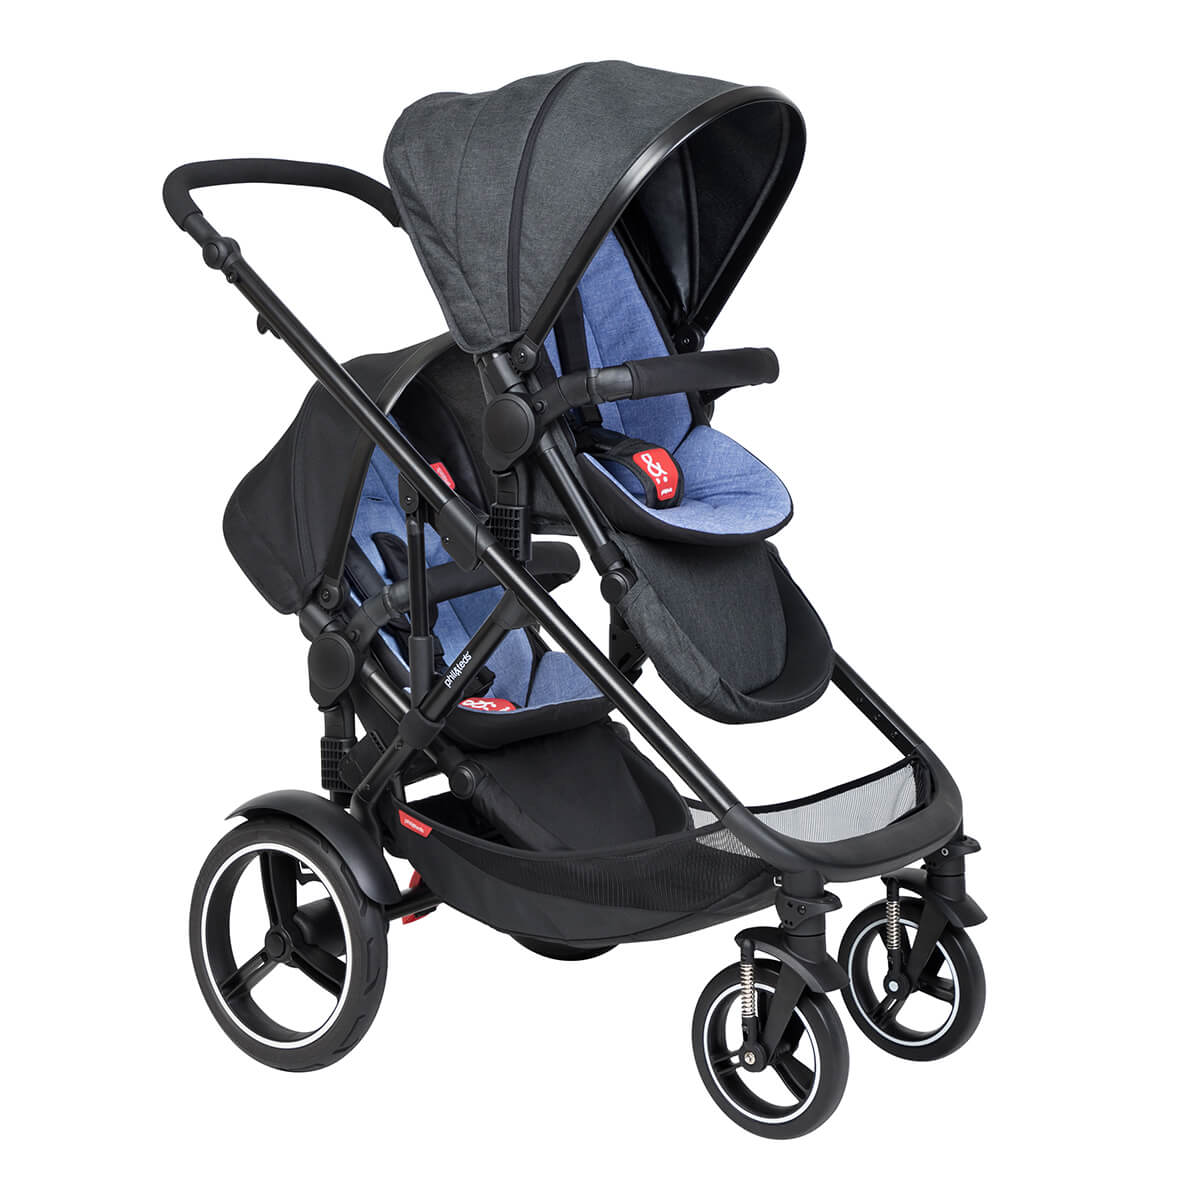 https://cdn.accentuate.io/4381204447309/19466204315842/philteds-voyager-inline-buggy-with-double-kit-in-rear-in-sky-blue-colour-v1626485502235.jpg?1200x1200